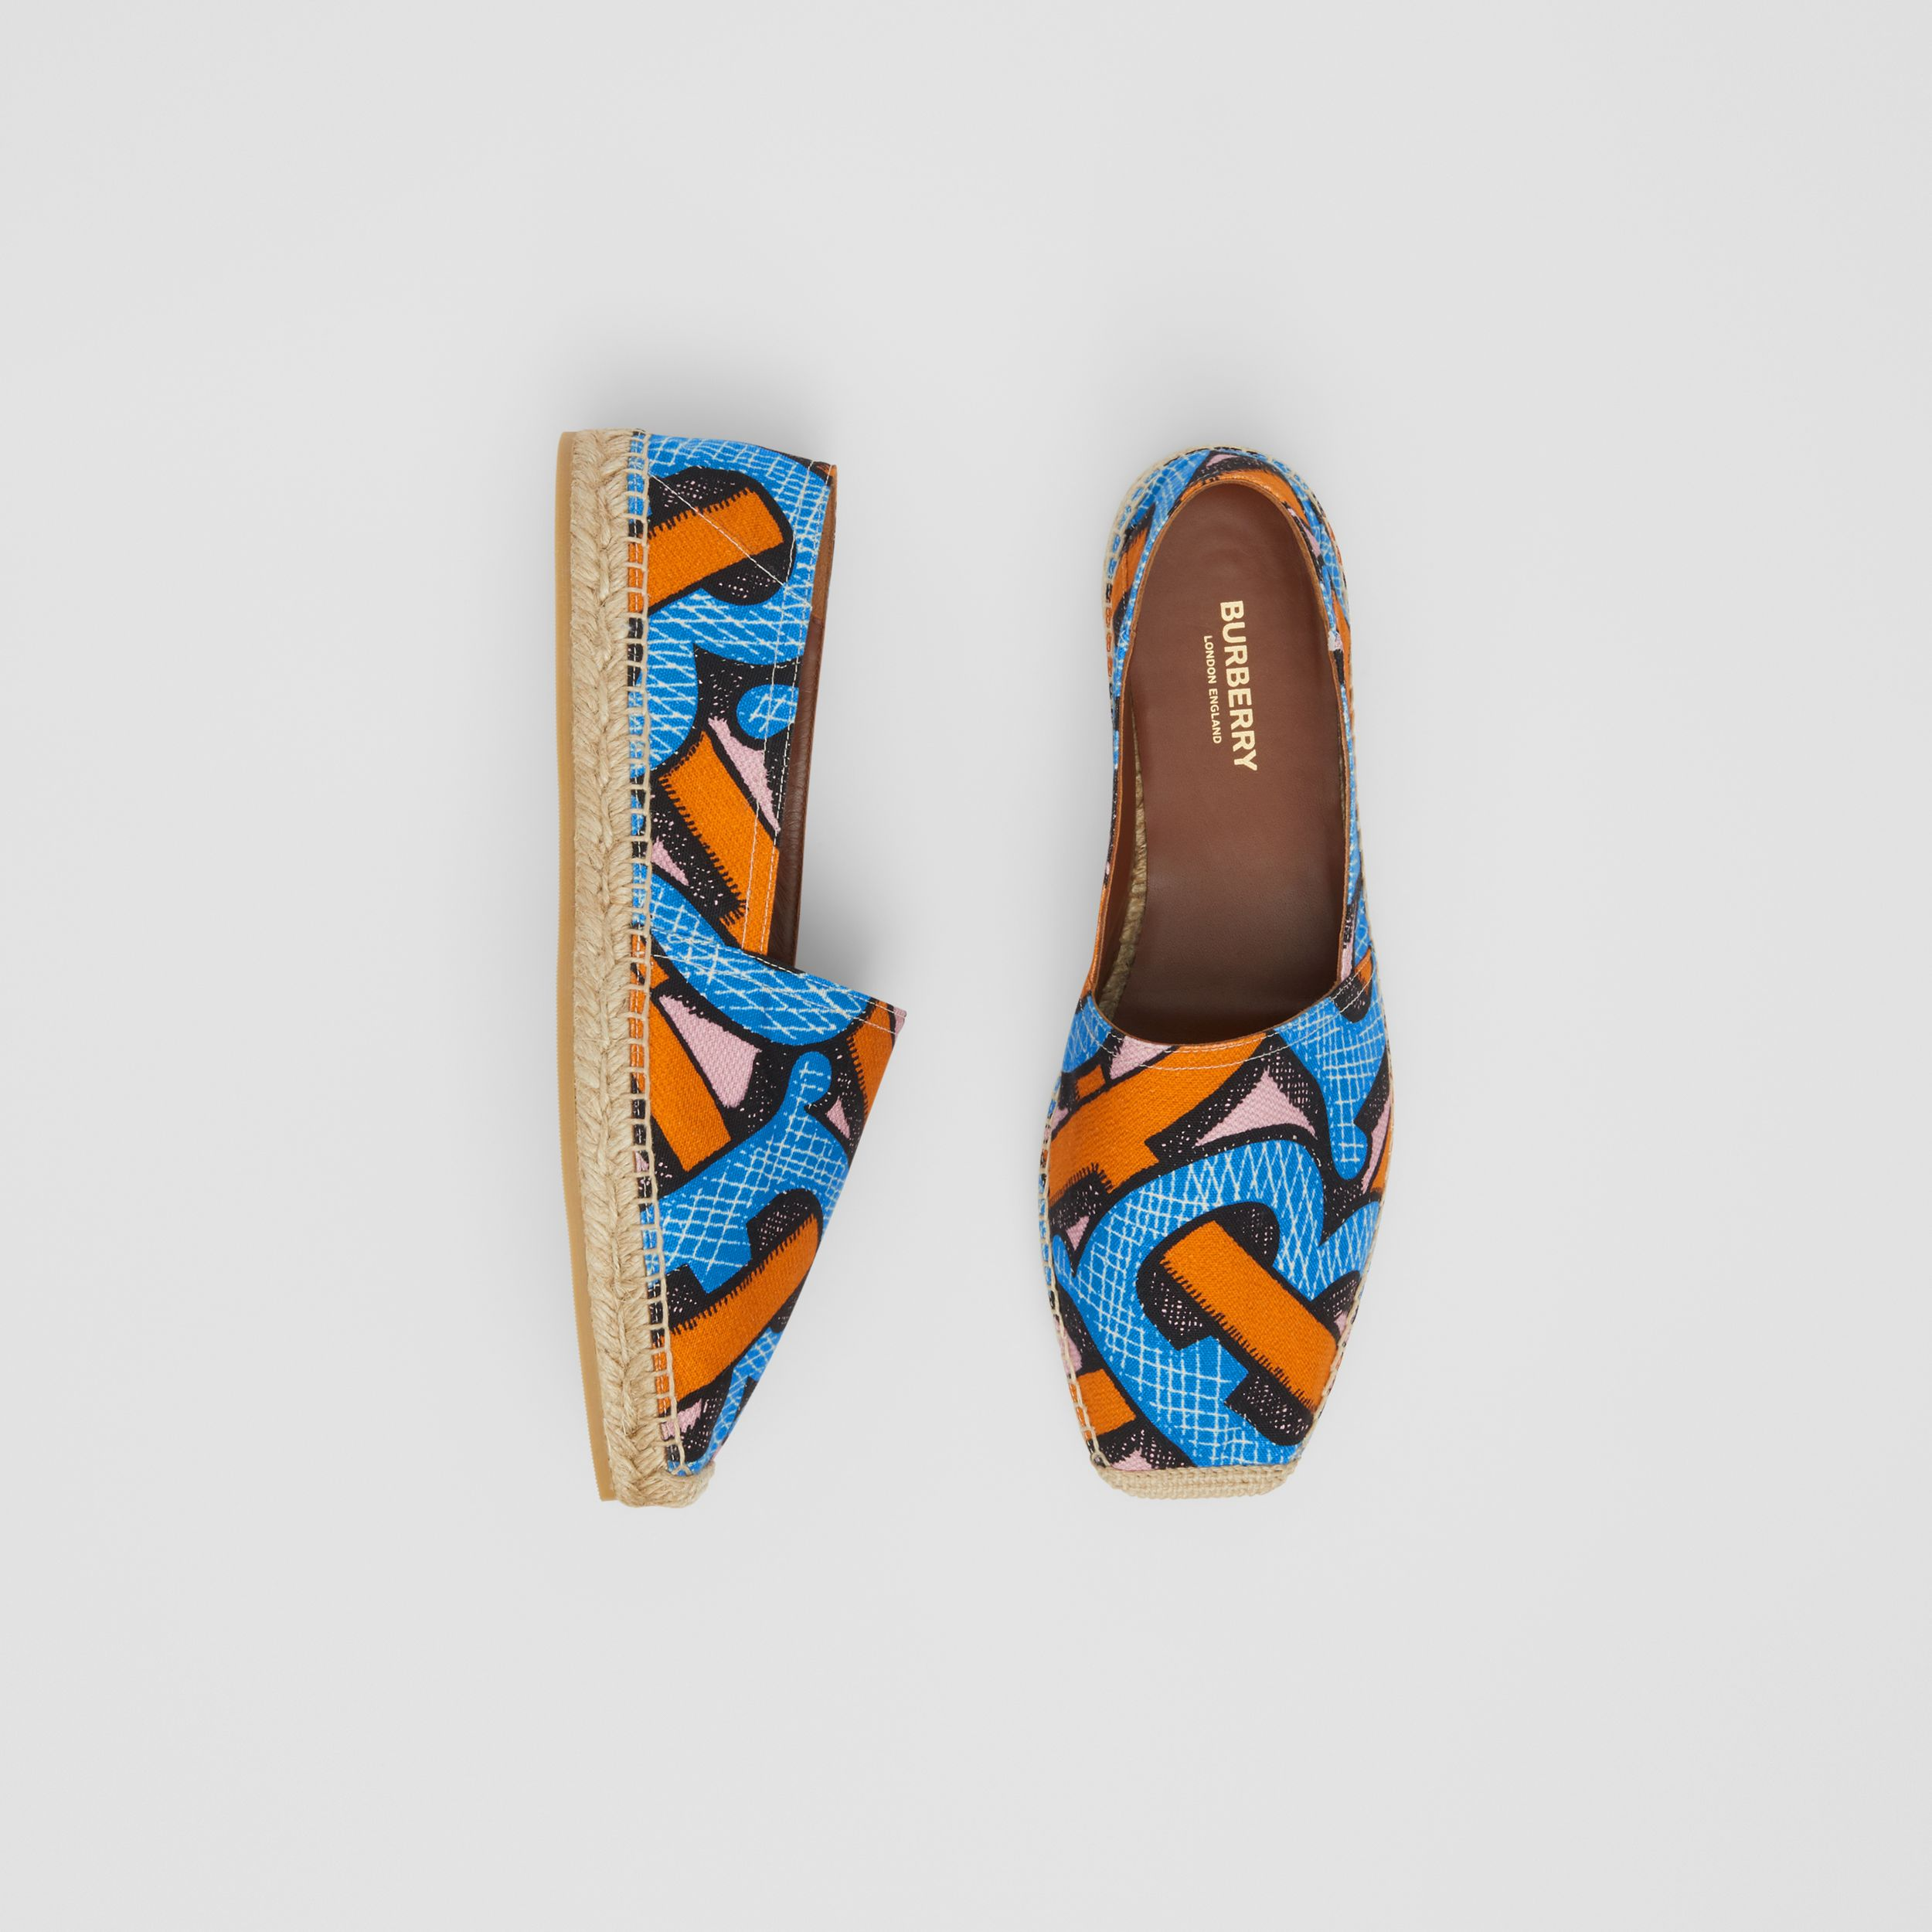 Monogram Print Cotton Canvas Espadrilles in Bright Cobalt - Women | Burberry - 1